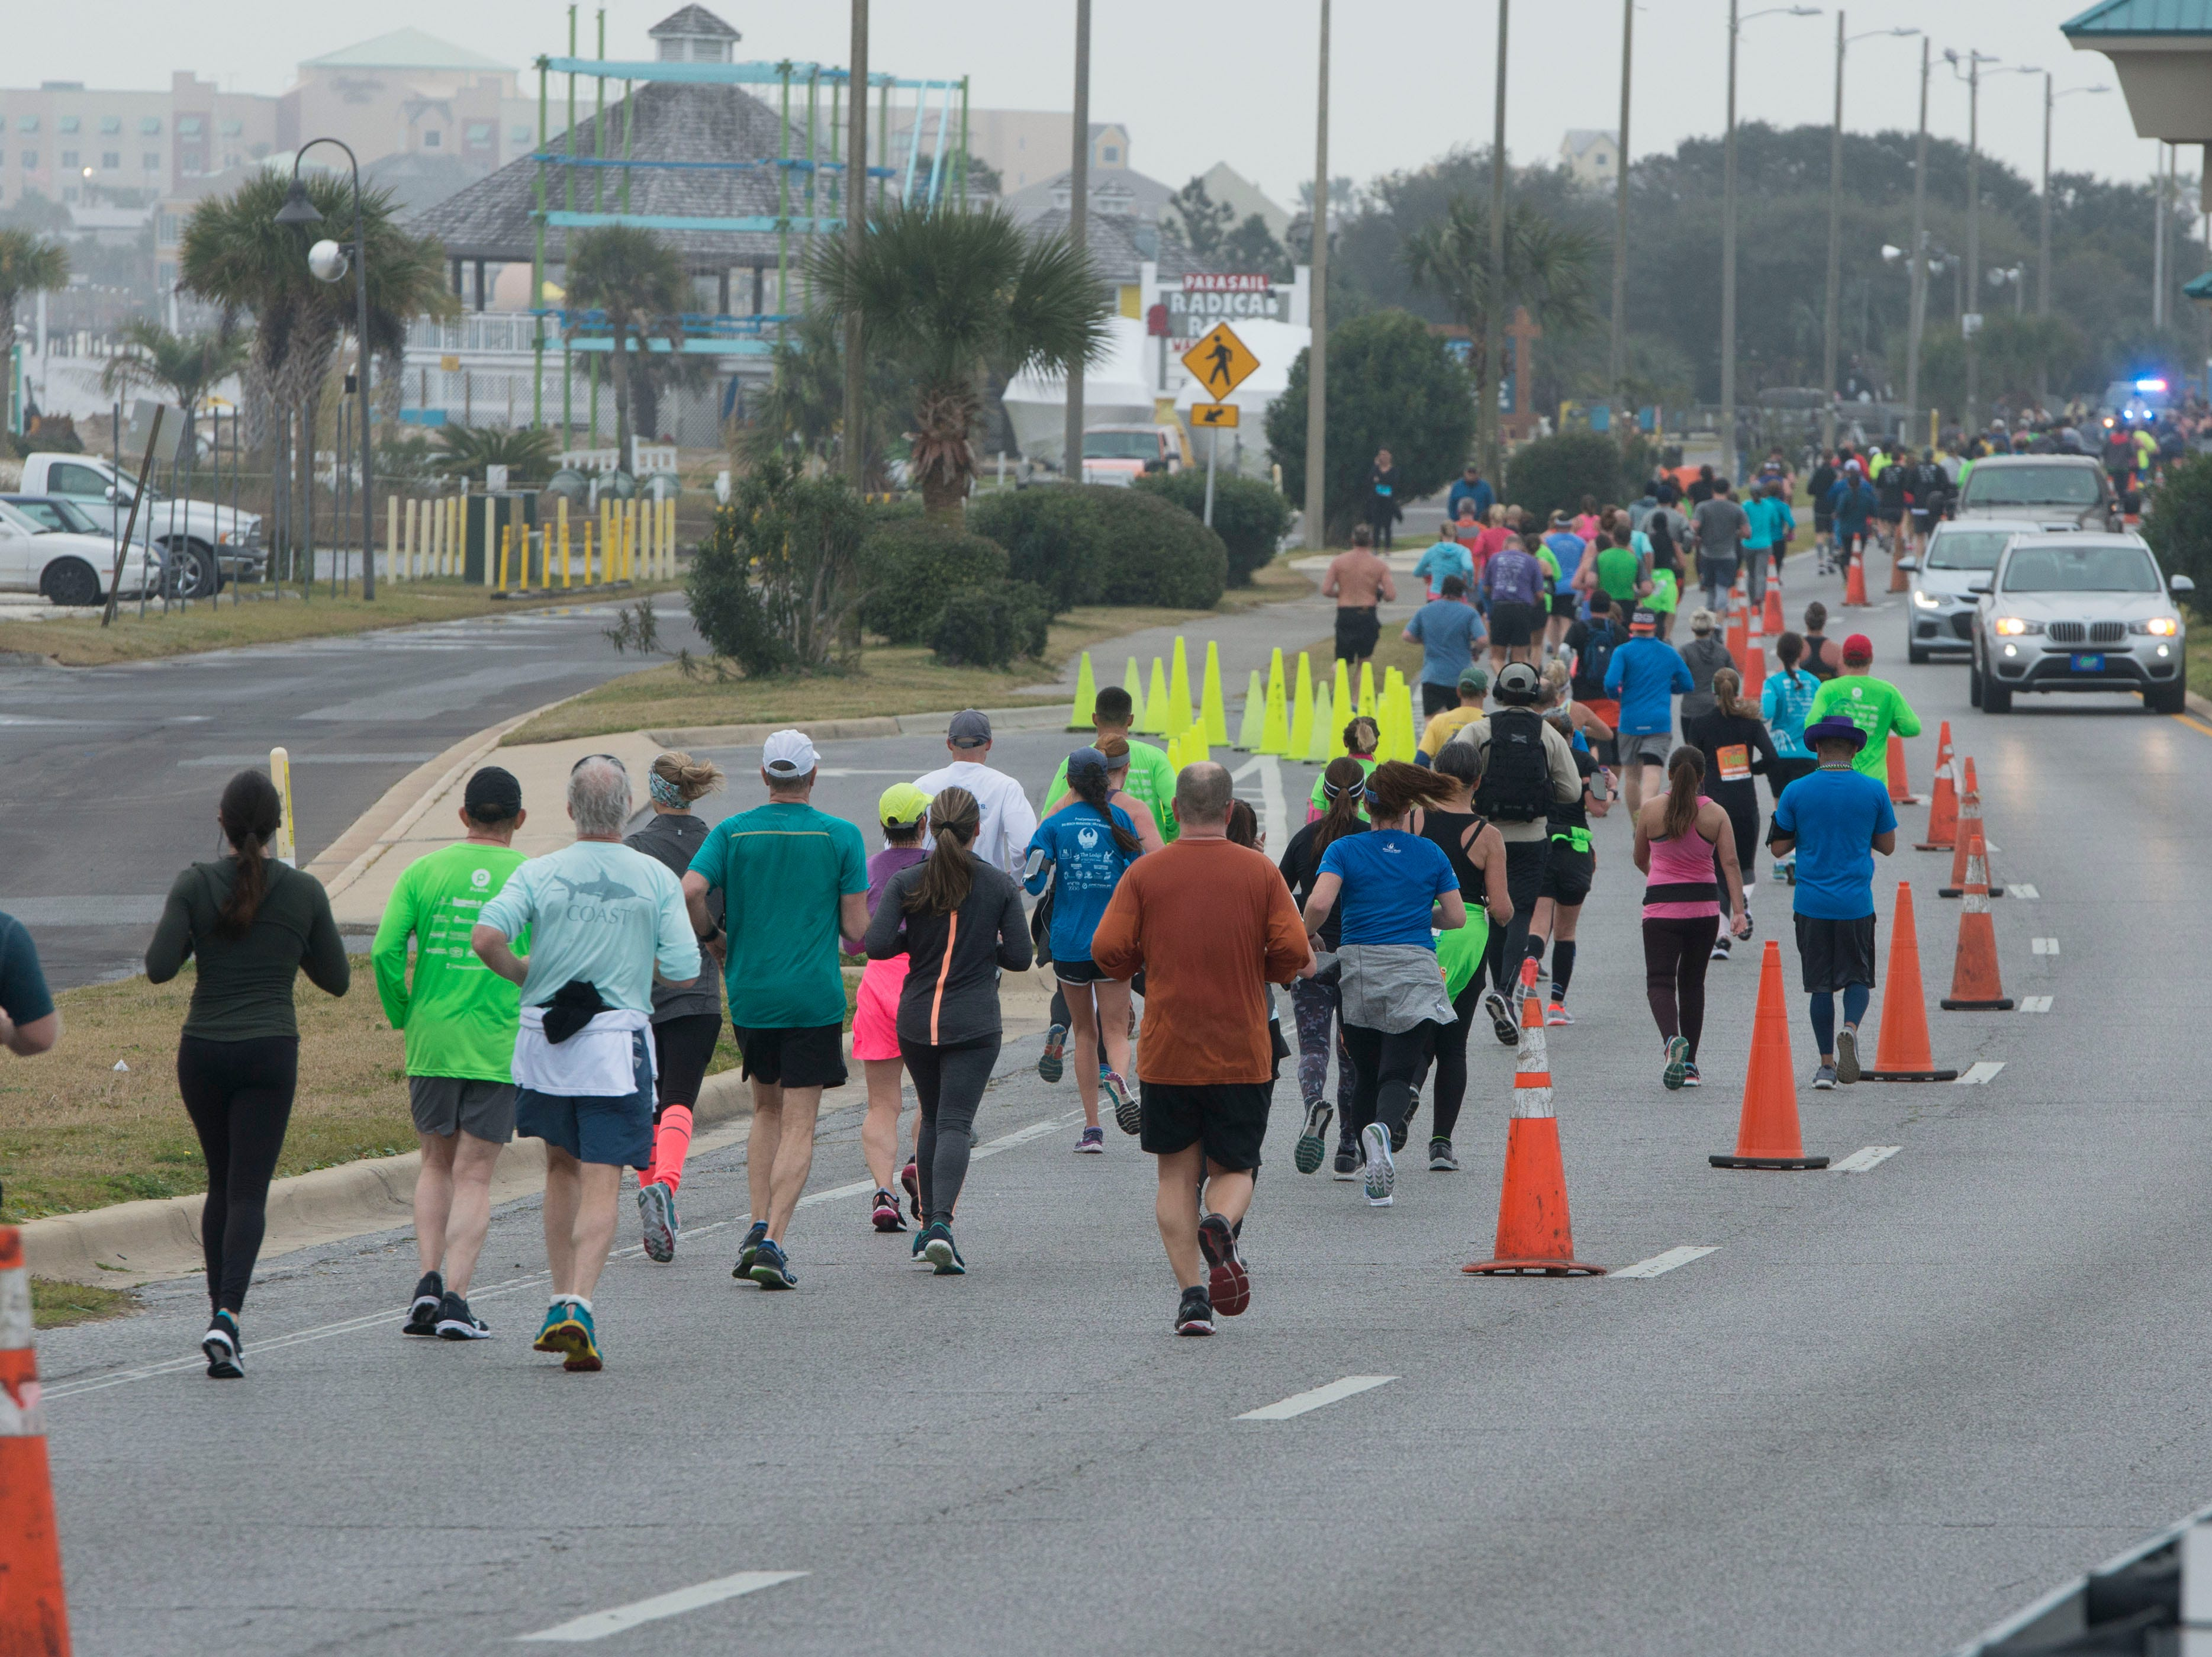 Runners make their way along the course Saturday, February 2, 2019 during the Pensacola Double Bridge Run presented by Publix. The 15K carries runners over two bridges, across Pensacola Bay and Santa Rosa Sound. It will run from downtown Pensacola with a tour that includes the historic district, and picturesque Bayfront Parkway, a run through Gulf Breeze, and onto Pensacola Beach. The 5K invites both runners and walkers to travel from Gulf Breeze to beautiful Pensacola Beach on Santa Rosa Island and the Gulf Islands Seashore.